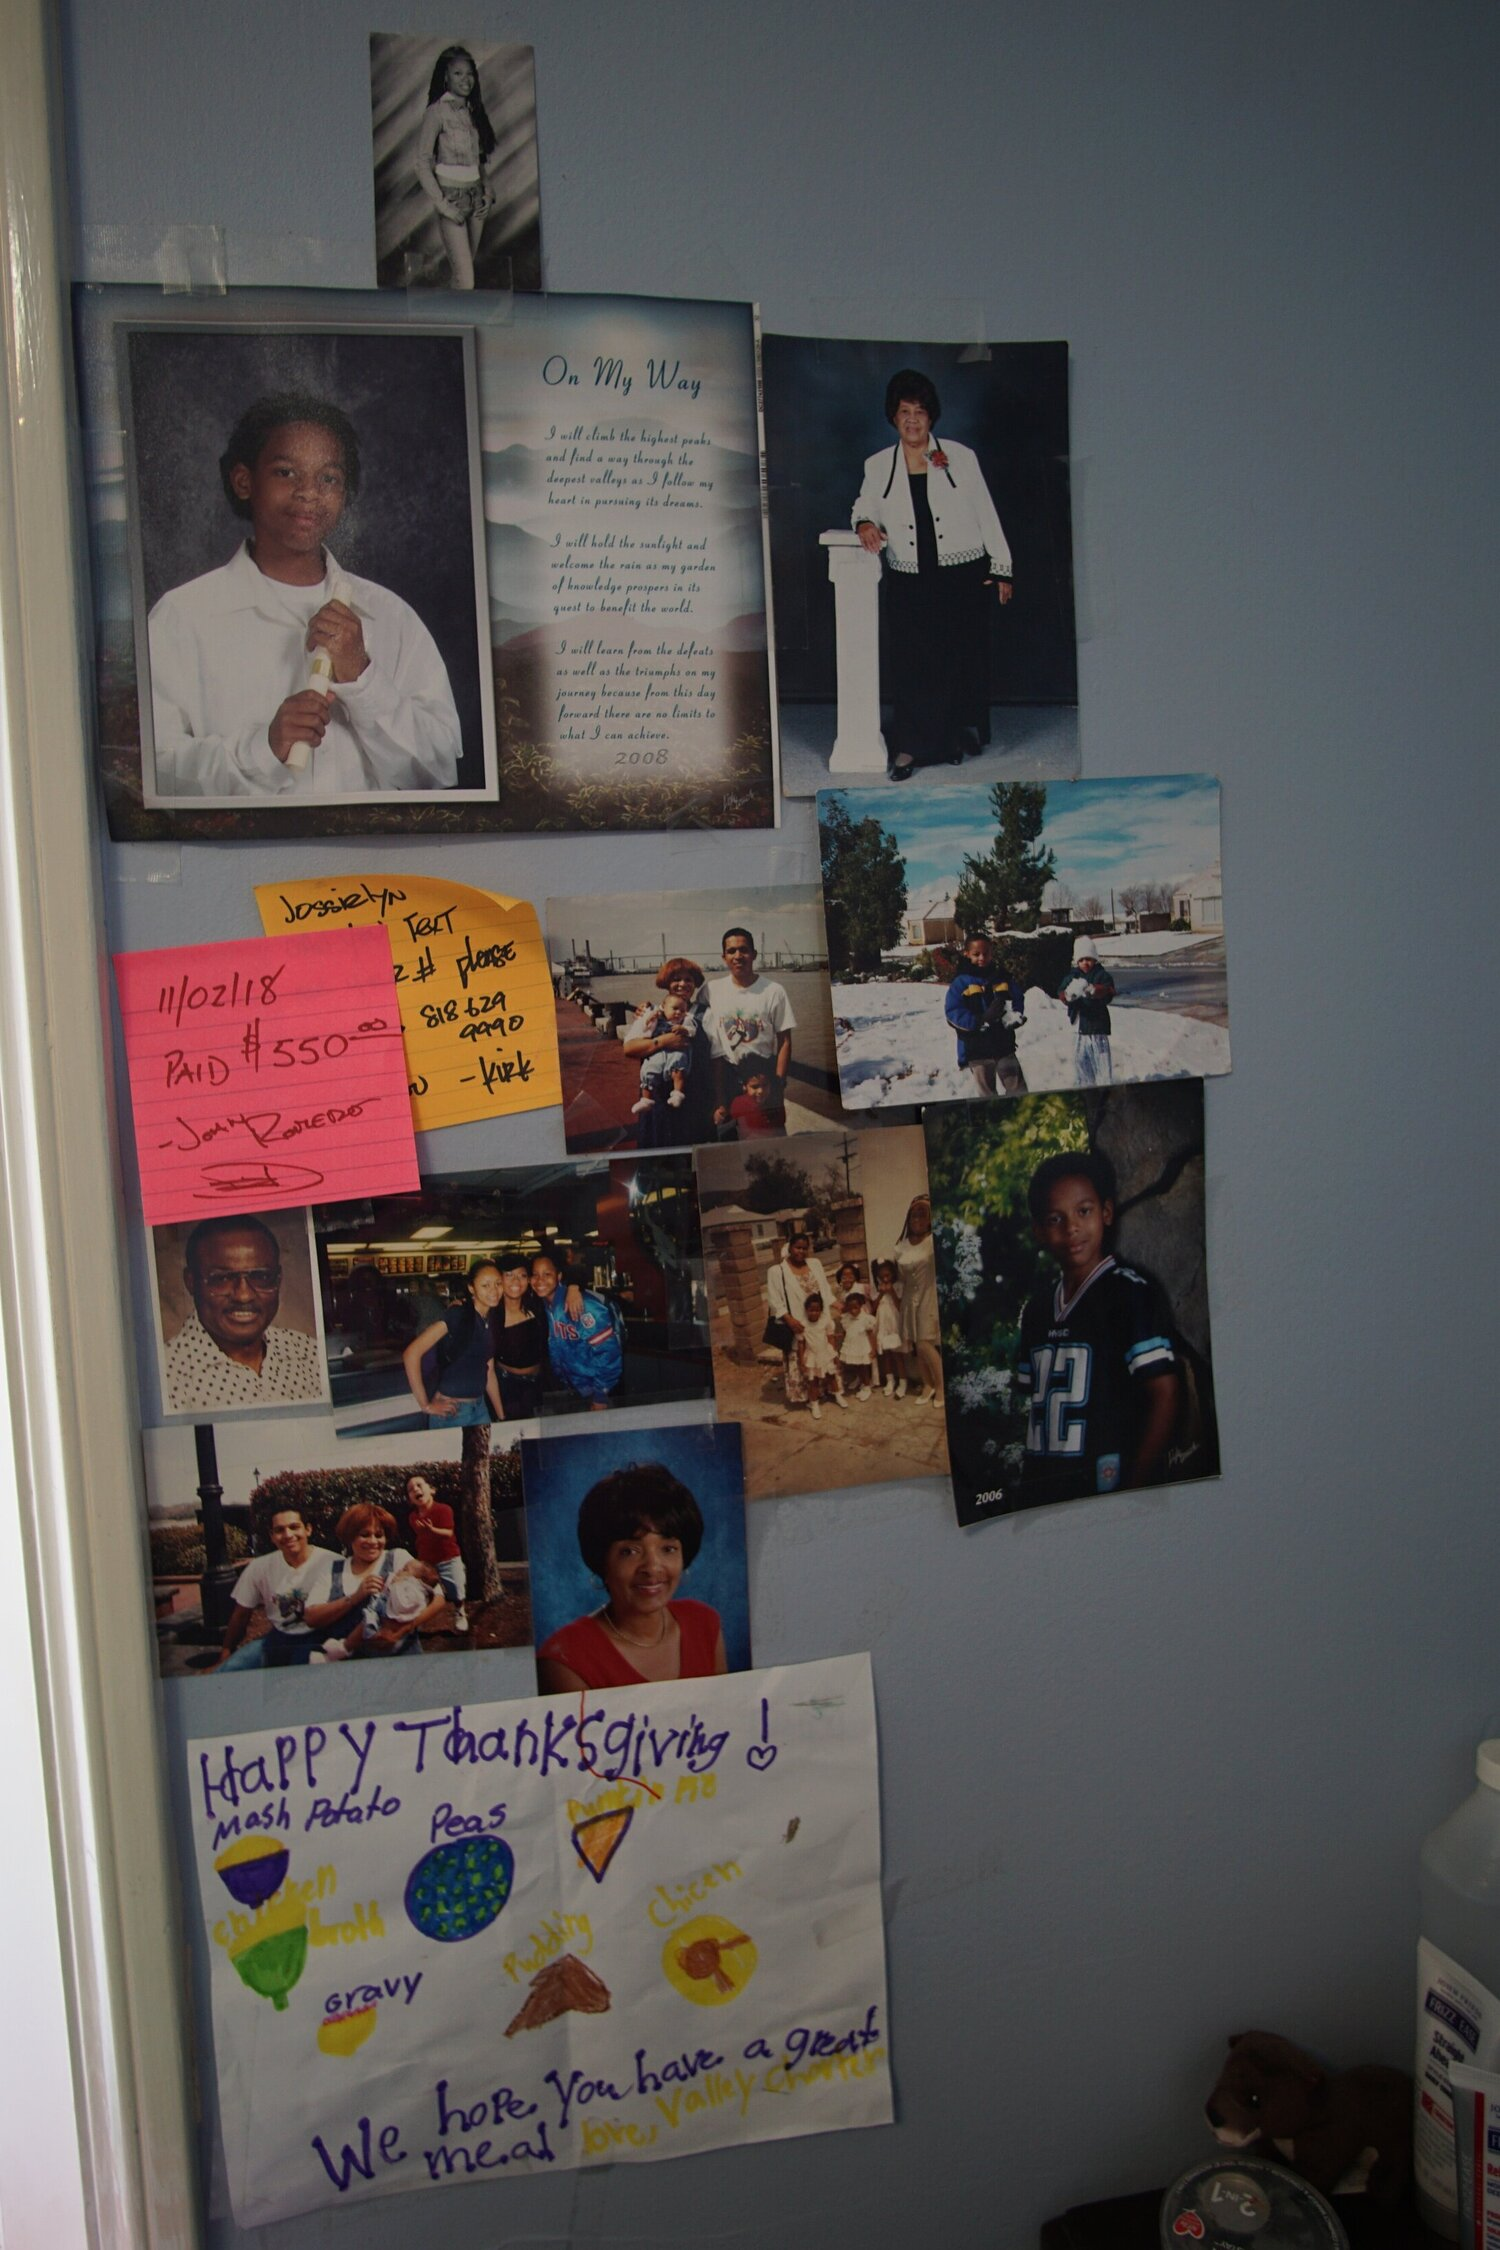 Images of Jessie's family are posted on the wall of her room.